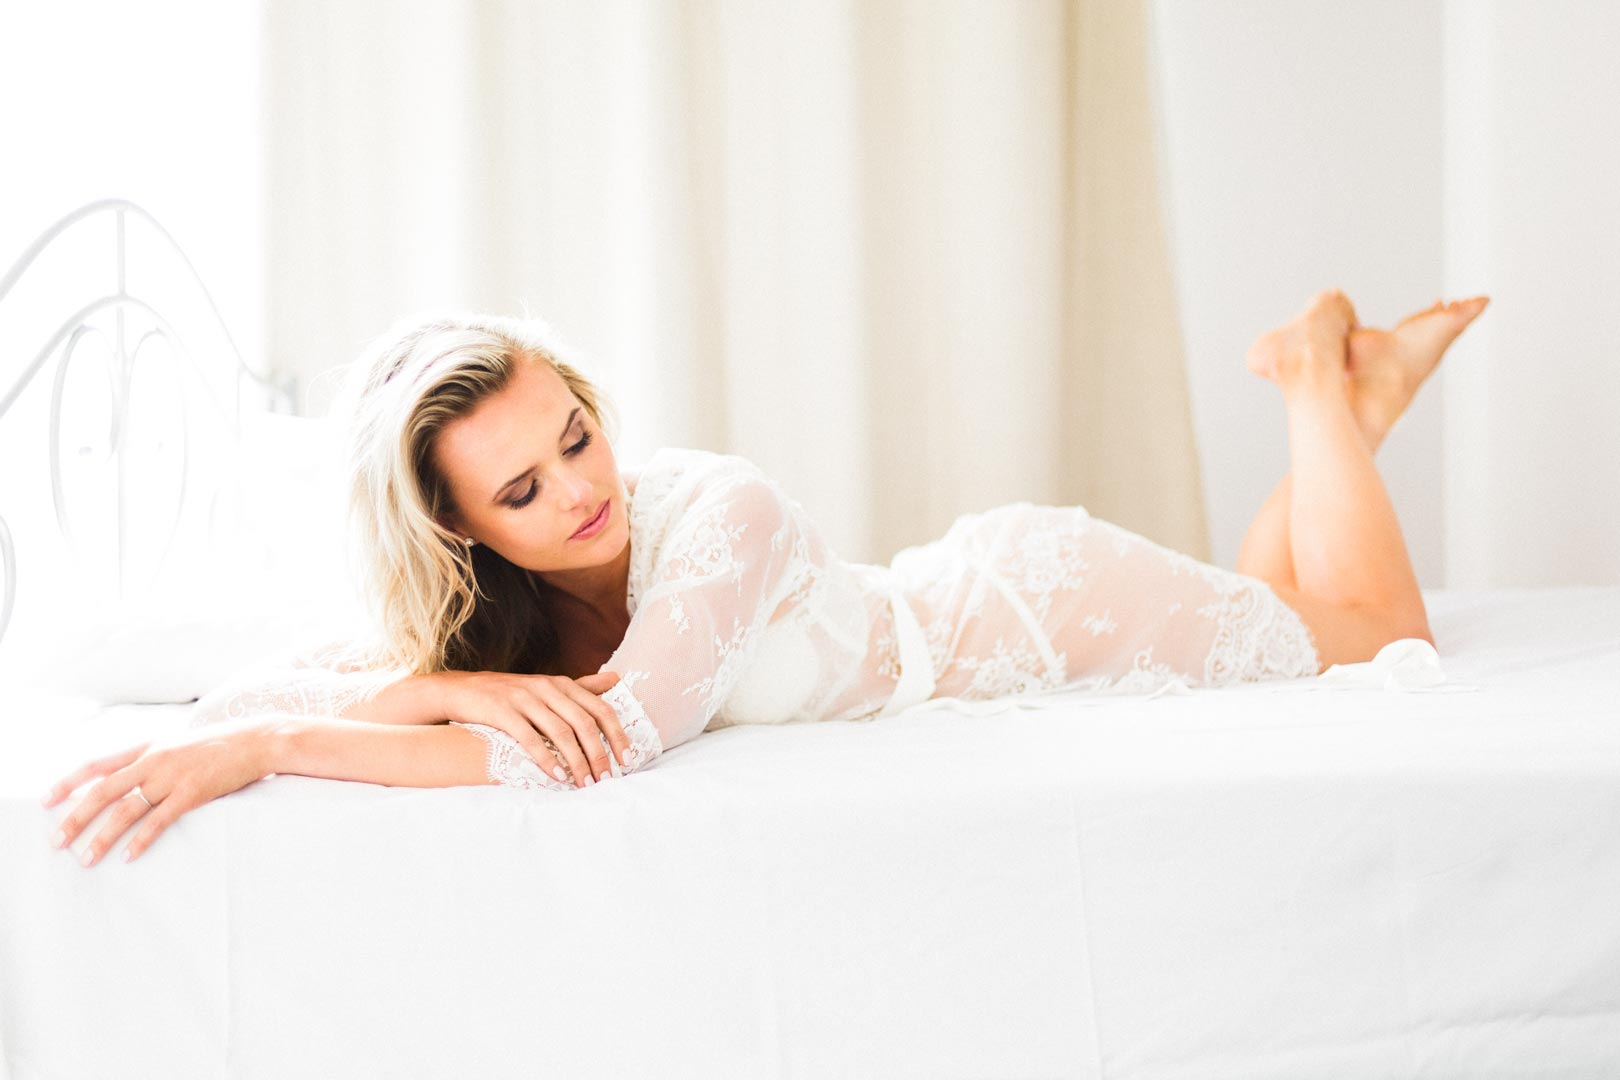 boudoir-photographer-melbourne